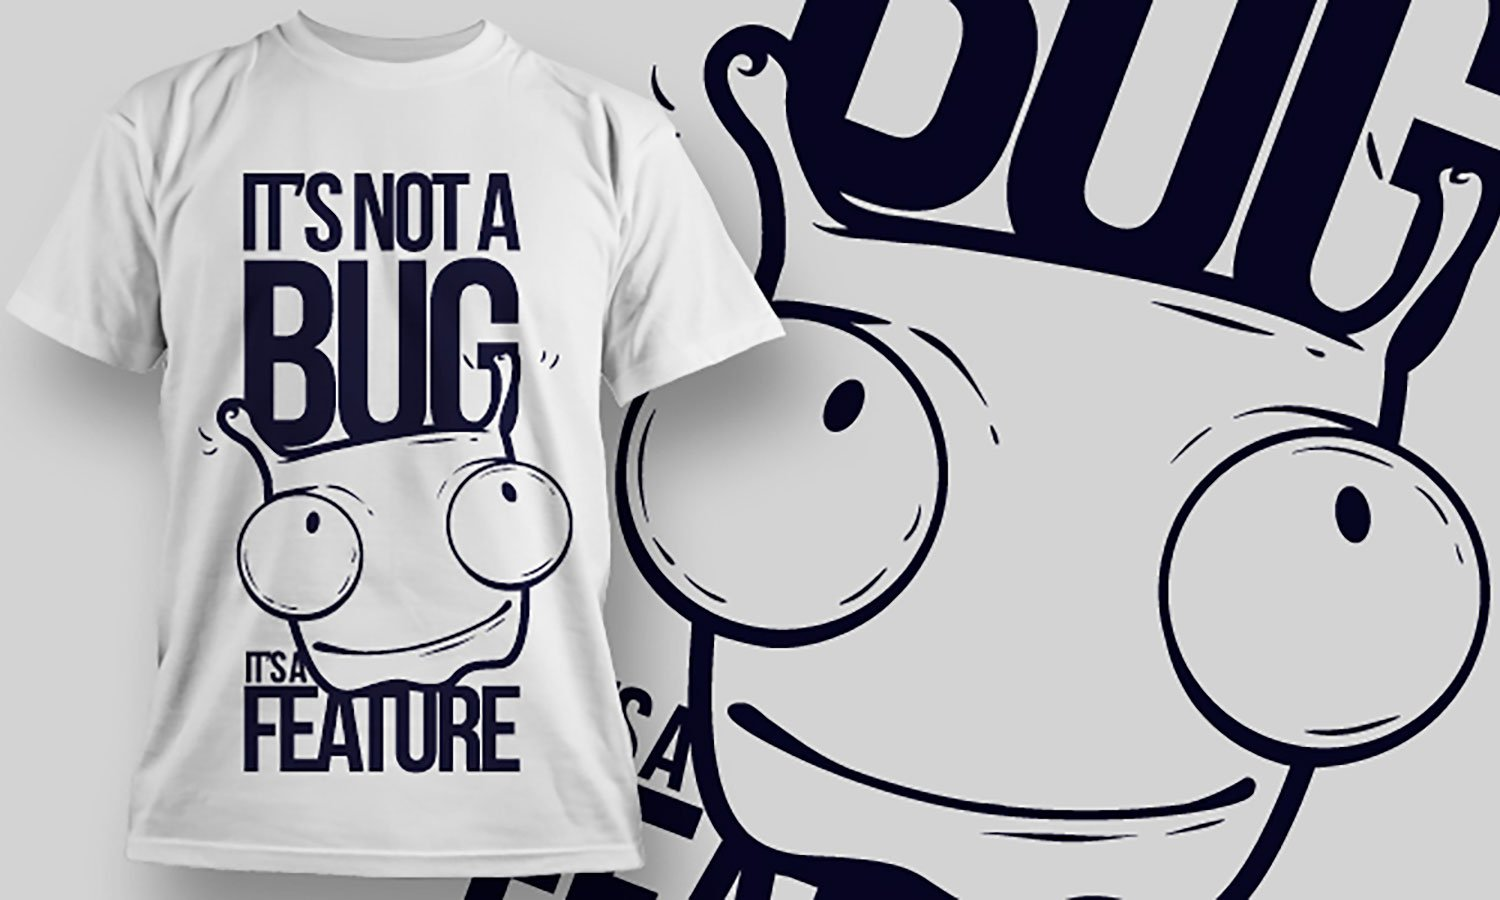 Bug - Printed T-Shirt for Men, Women and Kids - TS098